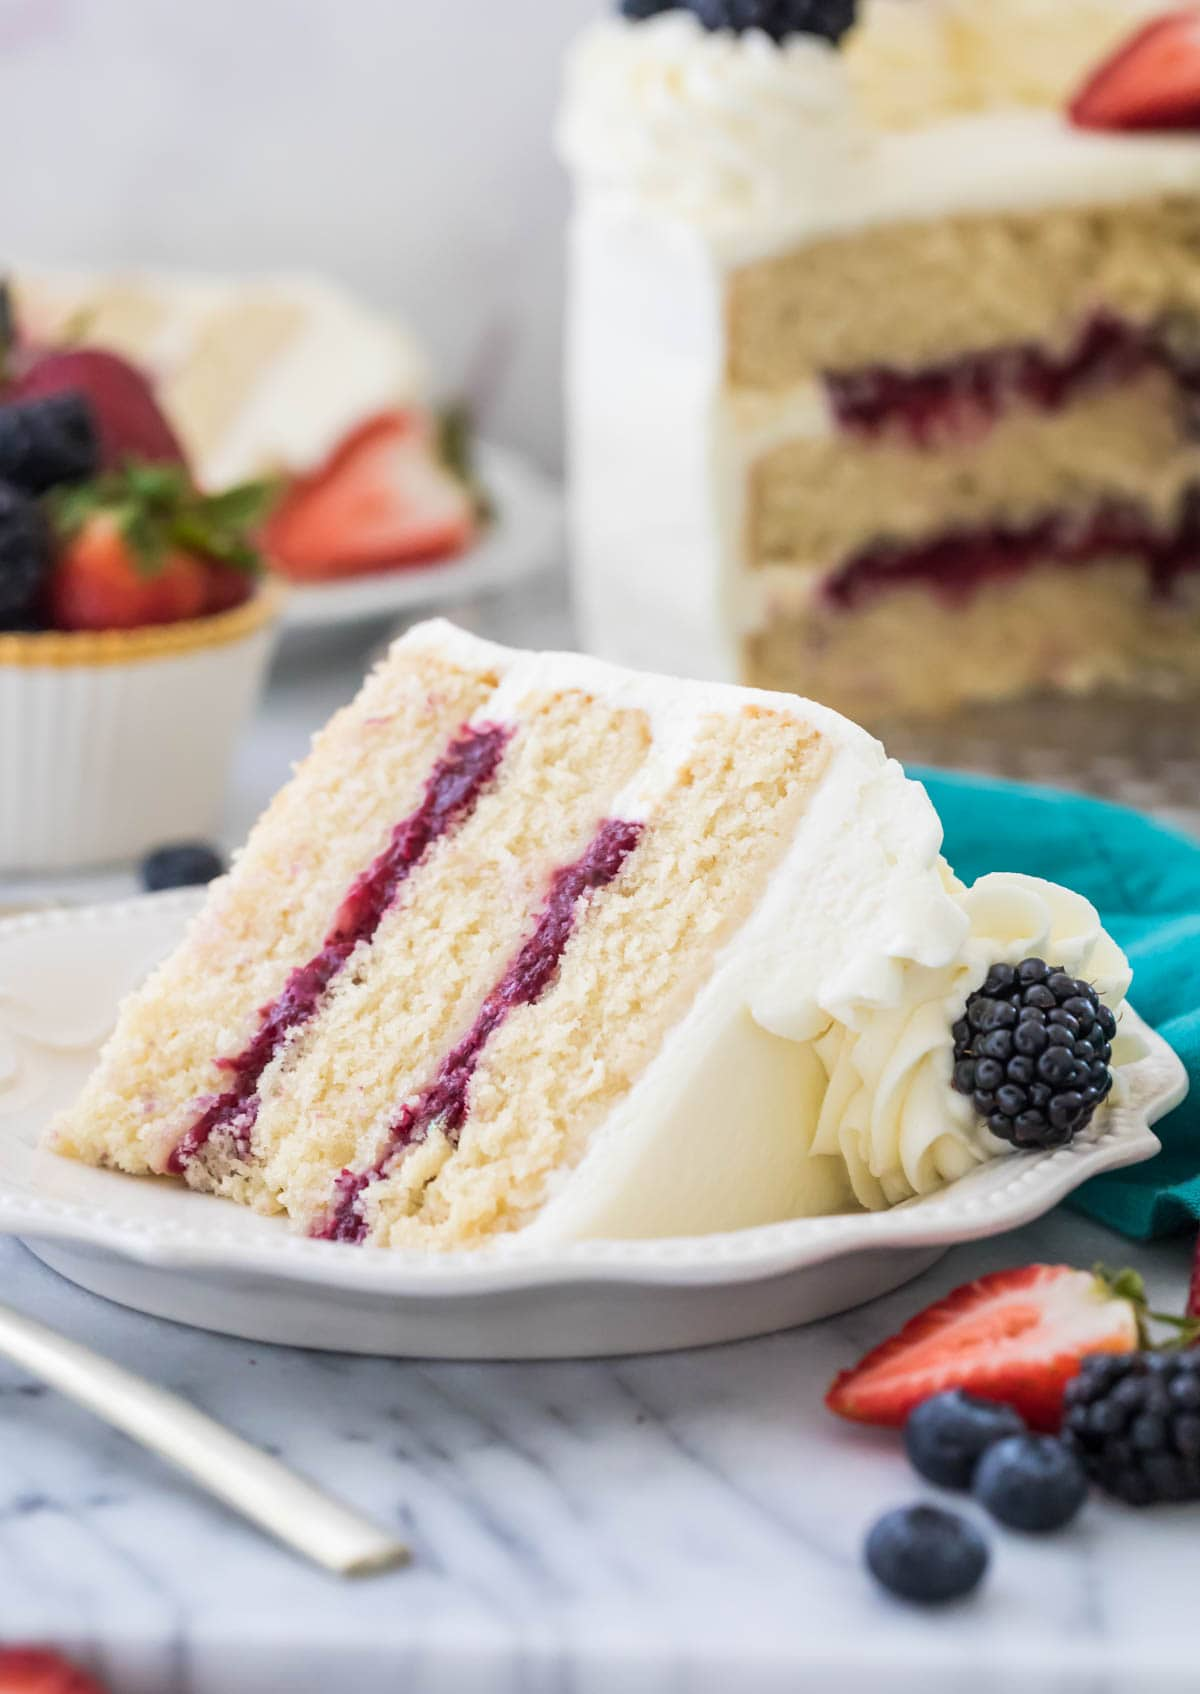 Three layer chantilly cake with berry filling on white plate surrounded by fruit and more cake